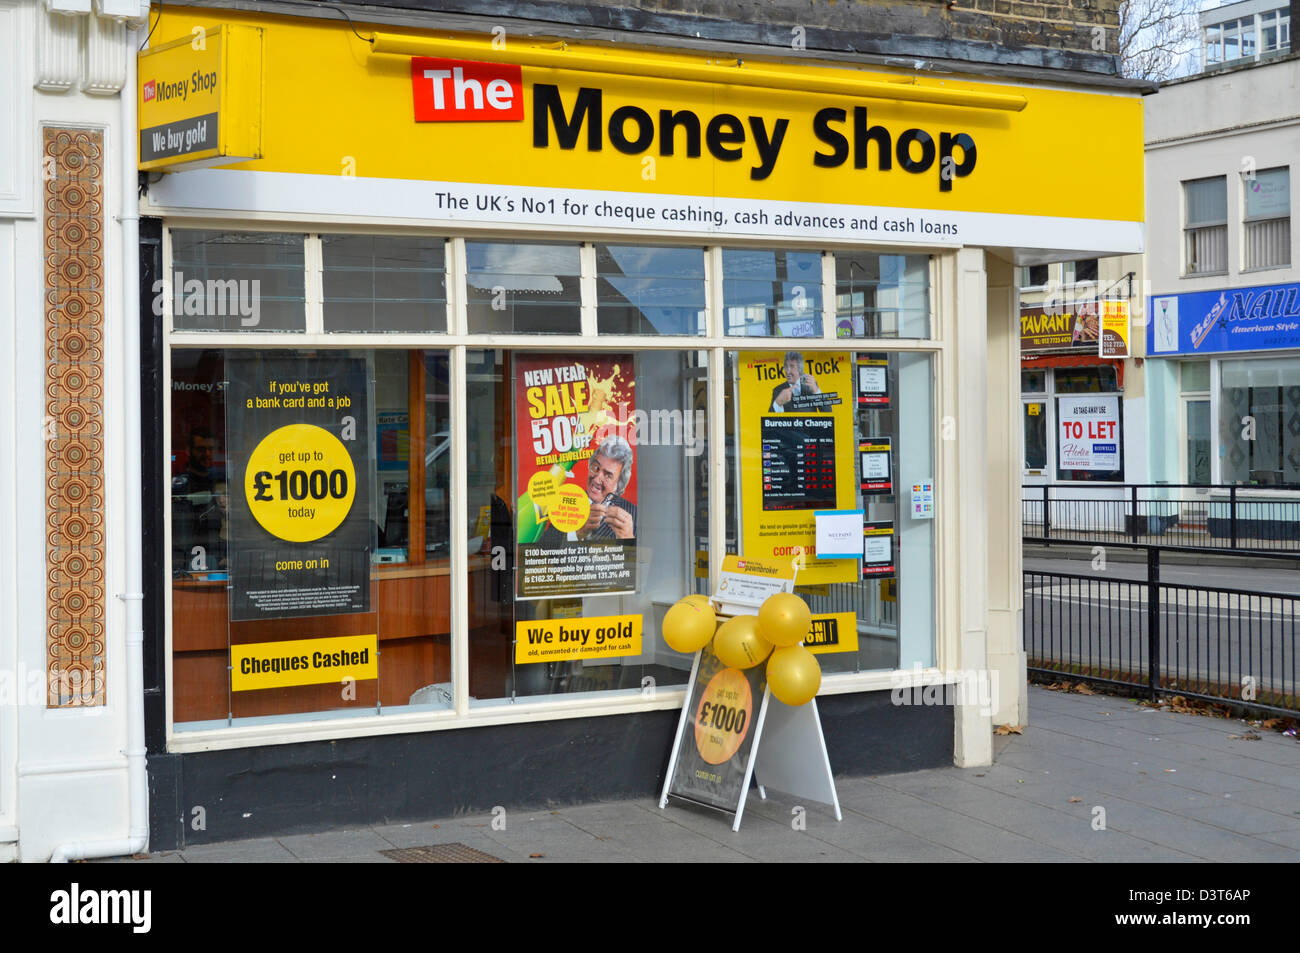 Money Shop front window display for bureau de change cheque cashing advances and cash loans - Stock Image